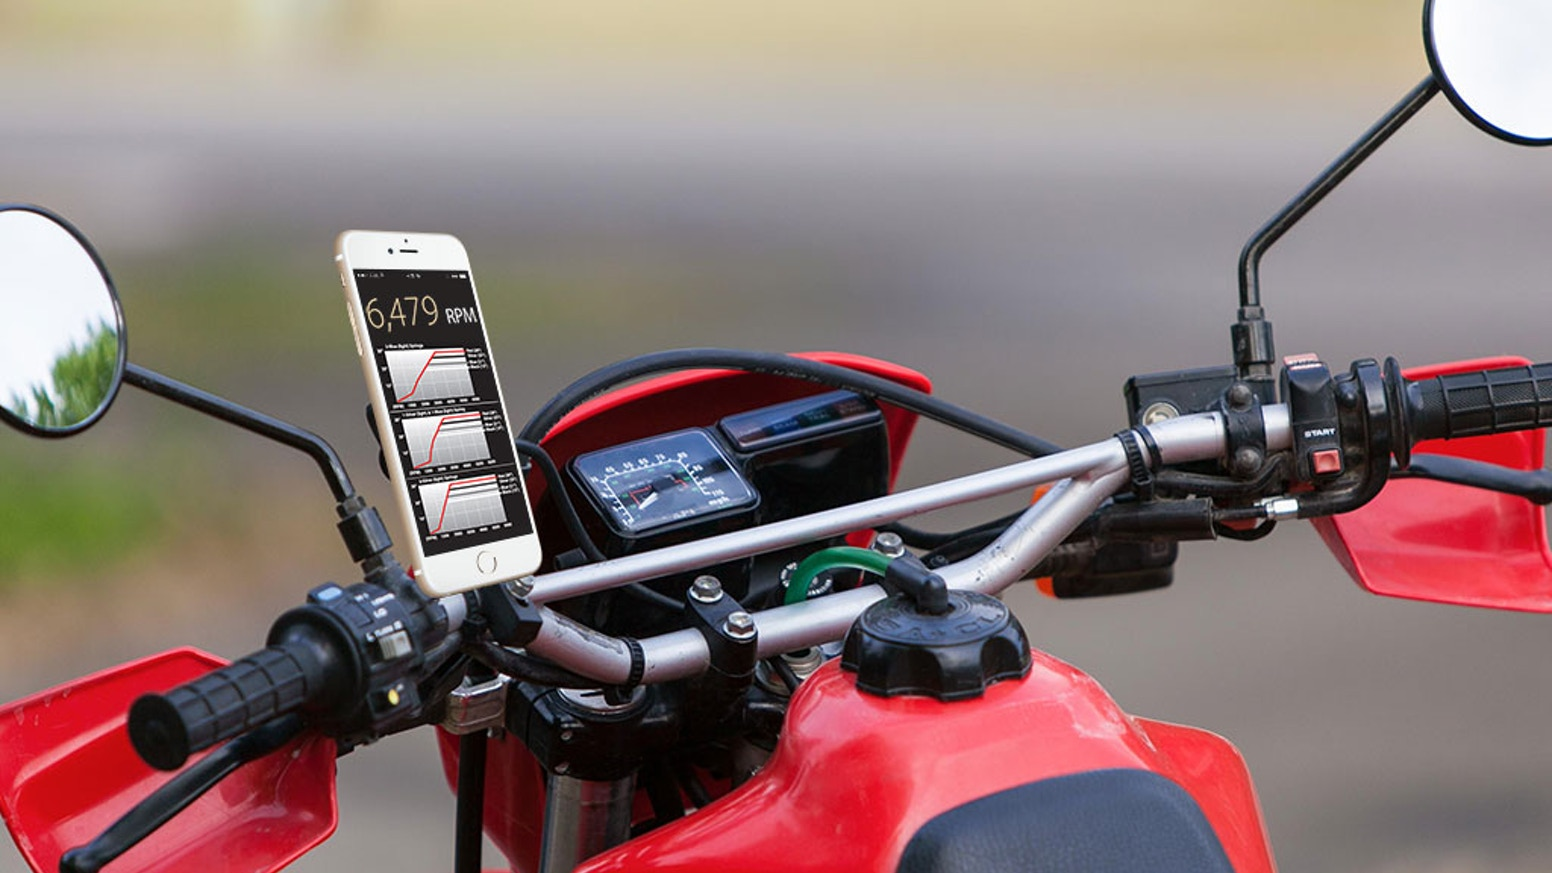 honda xr650l & xr650r cdis controlled via bluetooth ios & android apps   control ignition timing curve, adjust rpm limit, tachometer